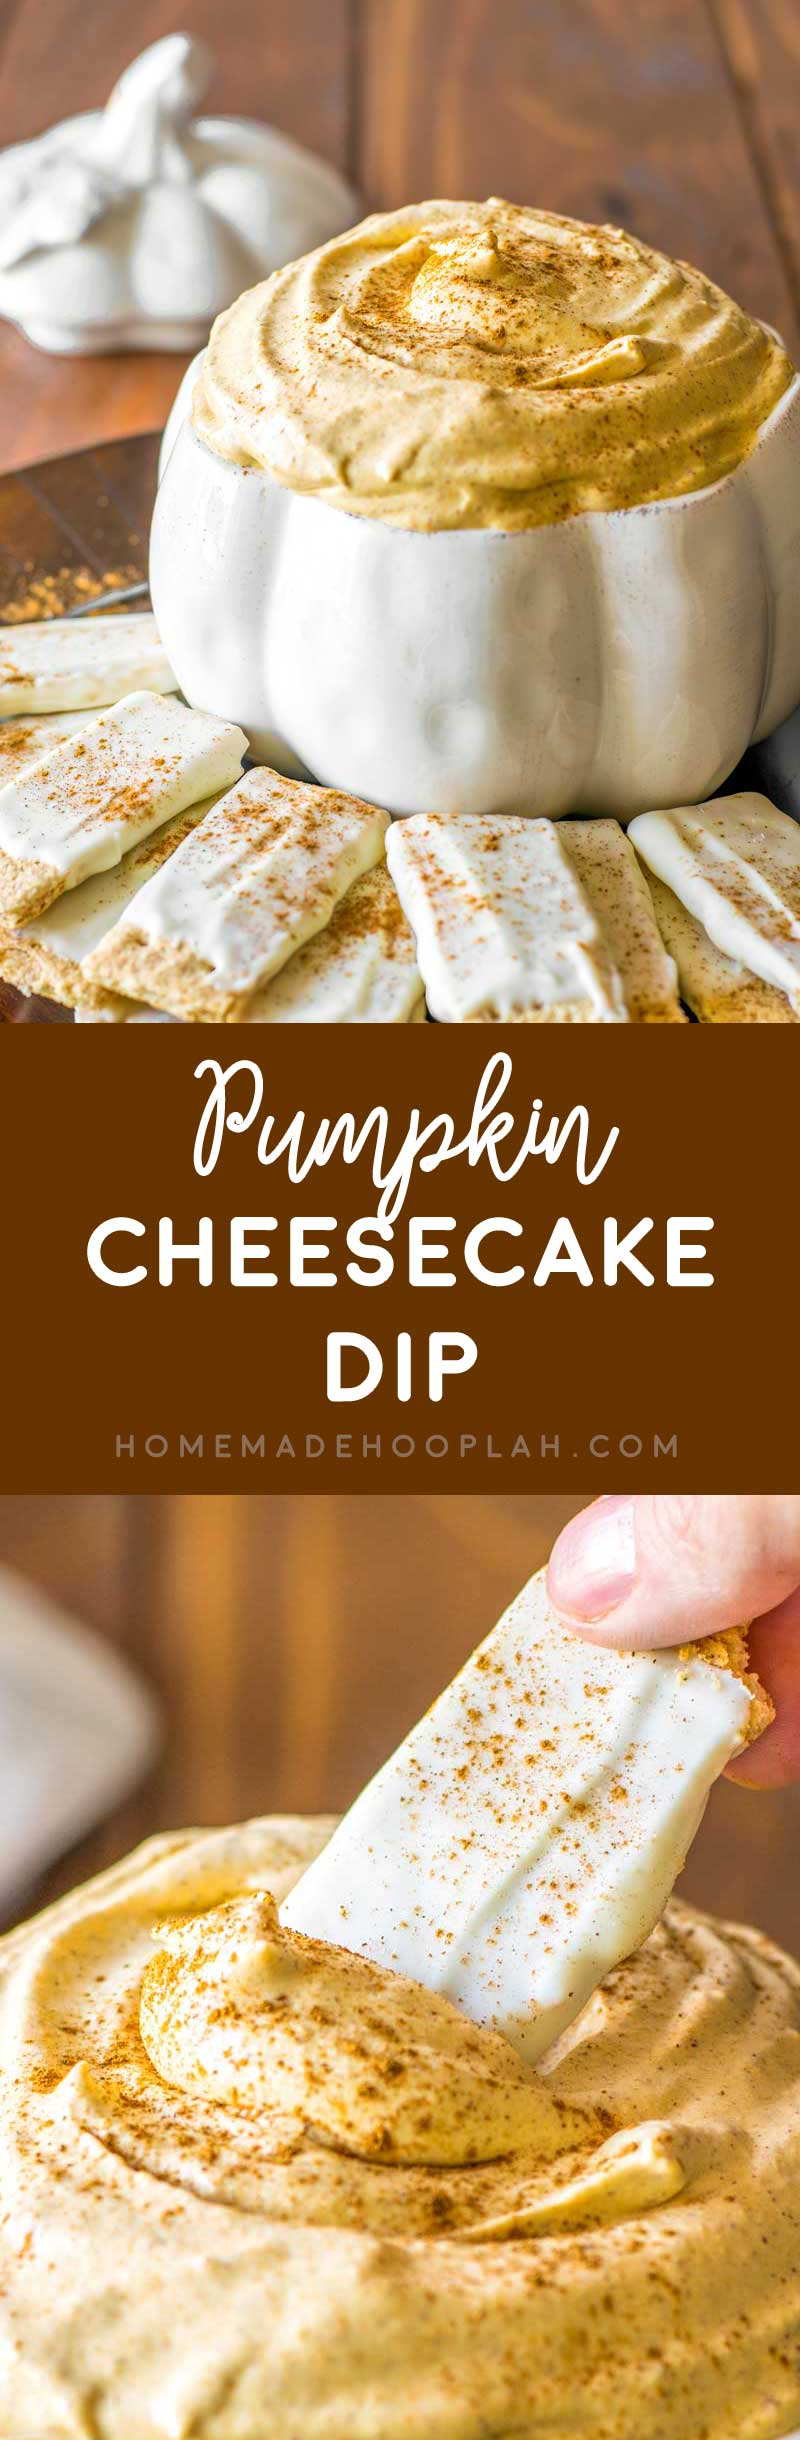 Pumpkin Cheesecake Dip! Appease your pumpkin cravings with this delicious pumpkin cheesecake dip, complete with white chocolate covered graham crackers. | HomemadeHooplah.com